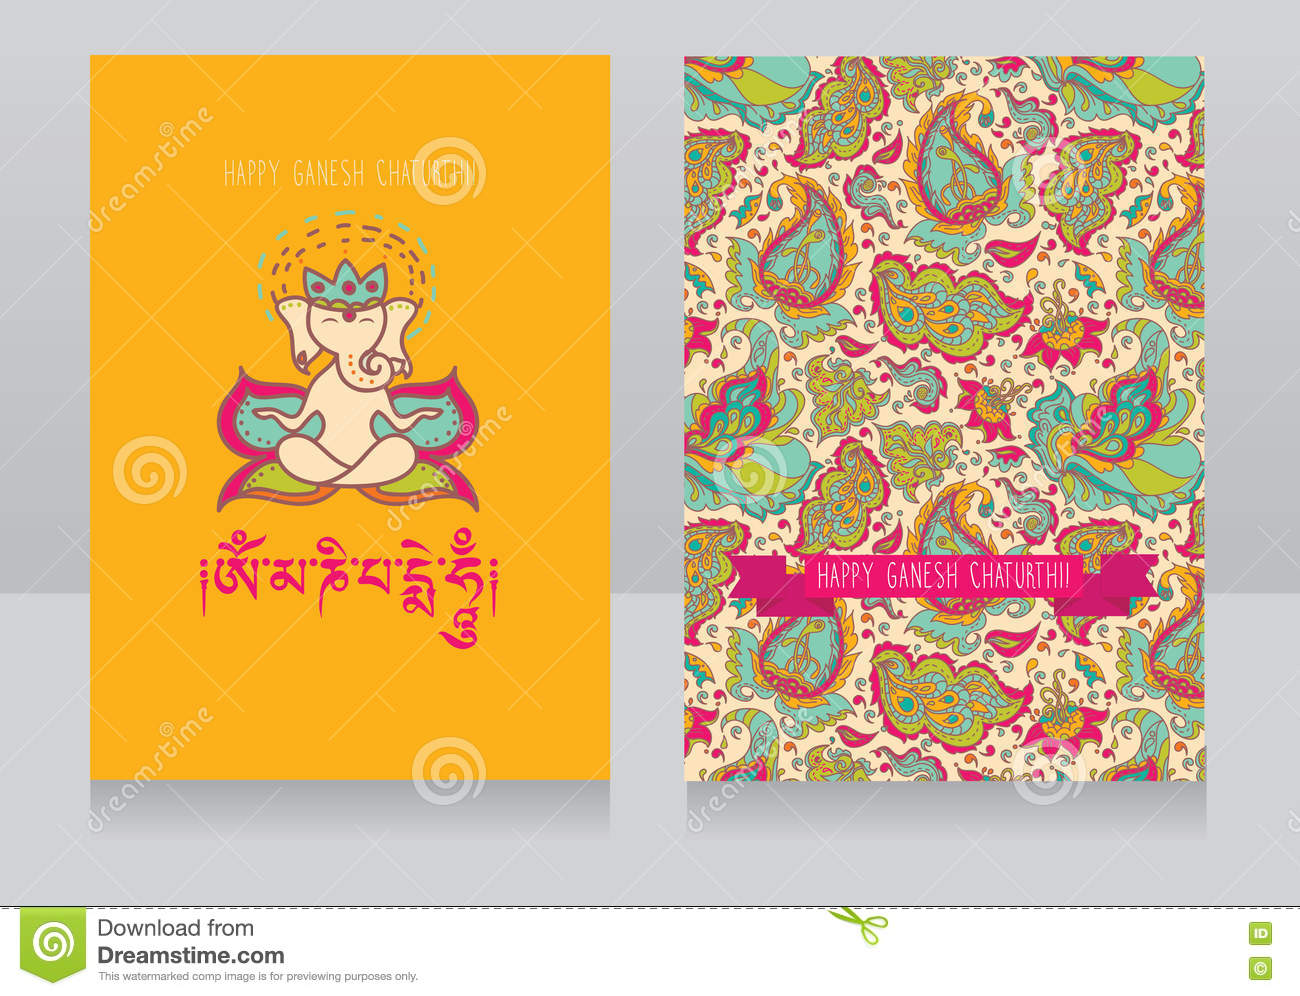 Greeting Card For Ganesh Chaturthi Stock Vector Illustration Of